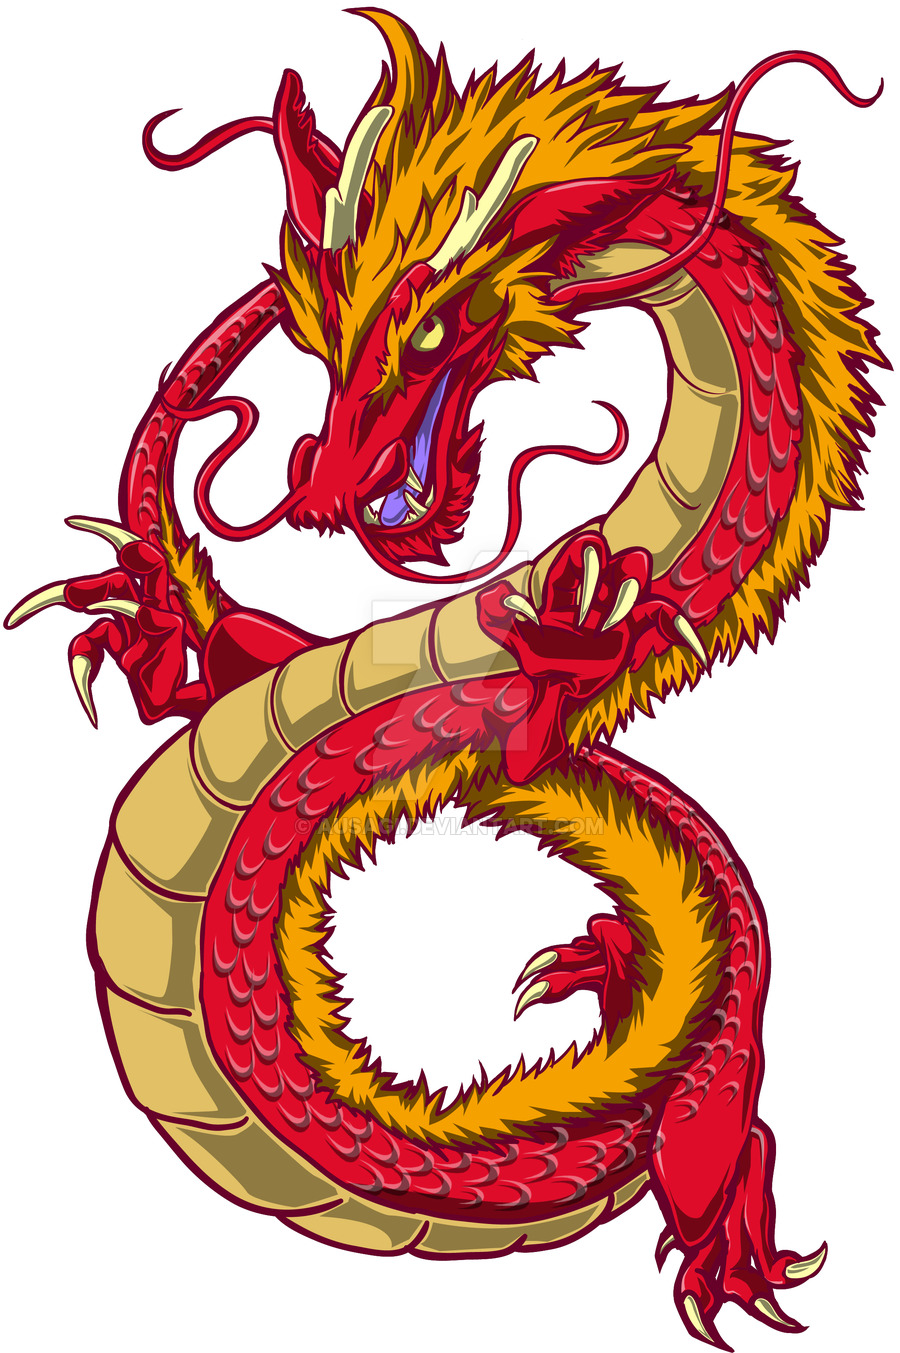 Chinese Dragon wallpapers, Artistic, HQ